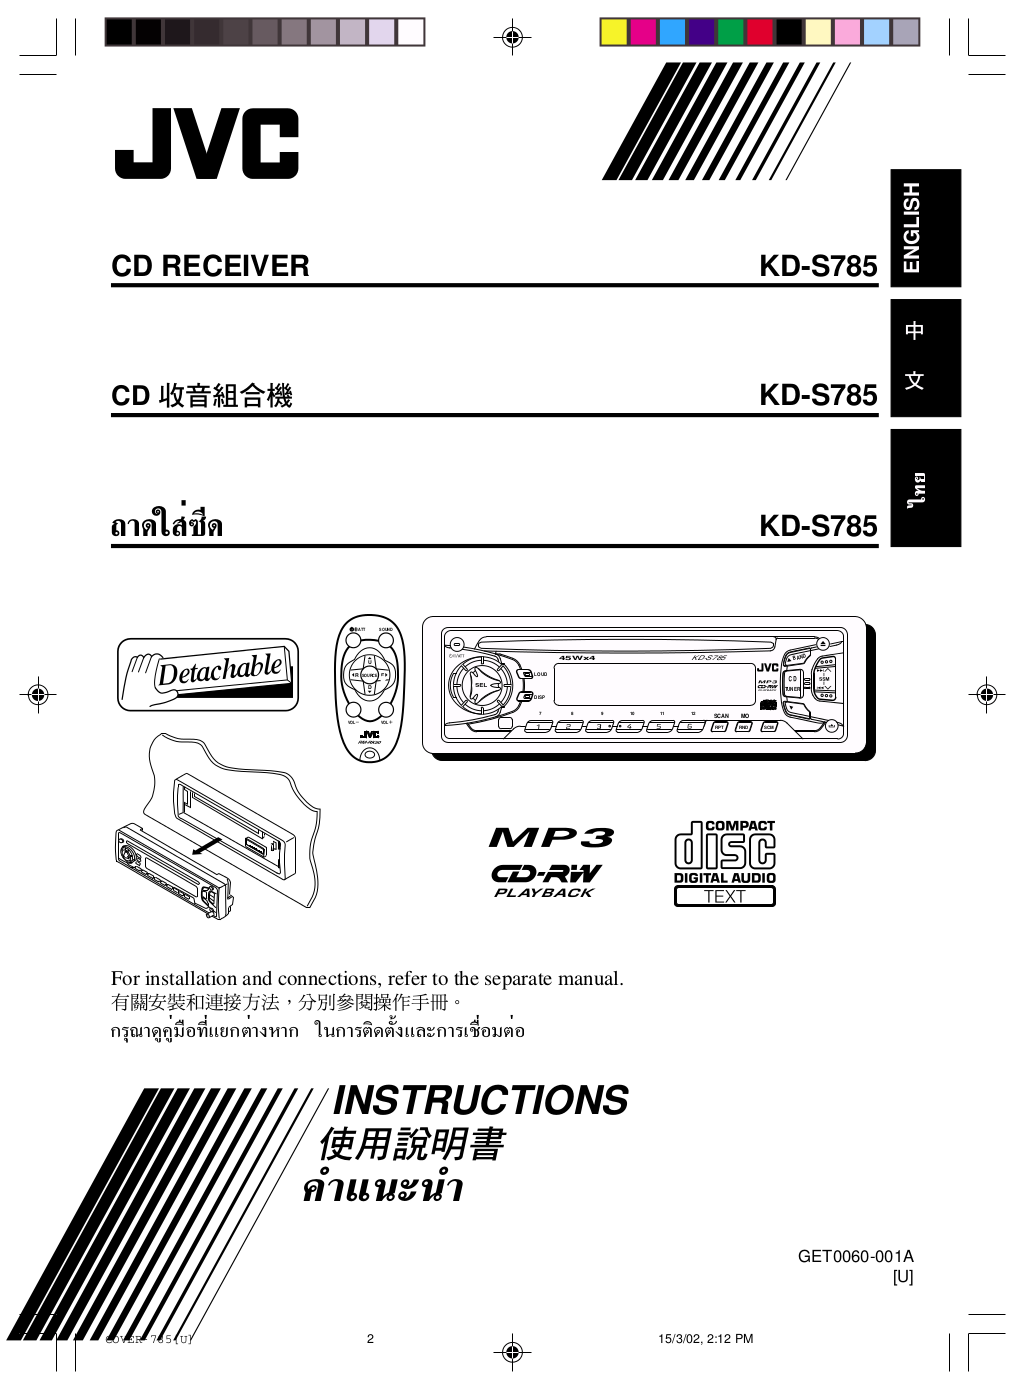 Jvc Kd R326 Wiring Diagram Diagrams R320 Harness Download Free Pdf For S785 Car Receiver Manual